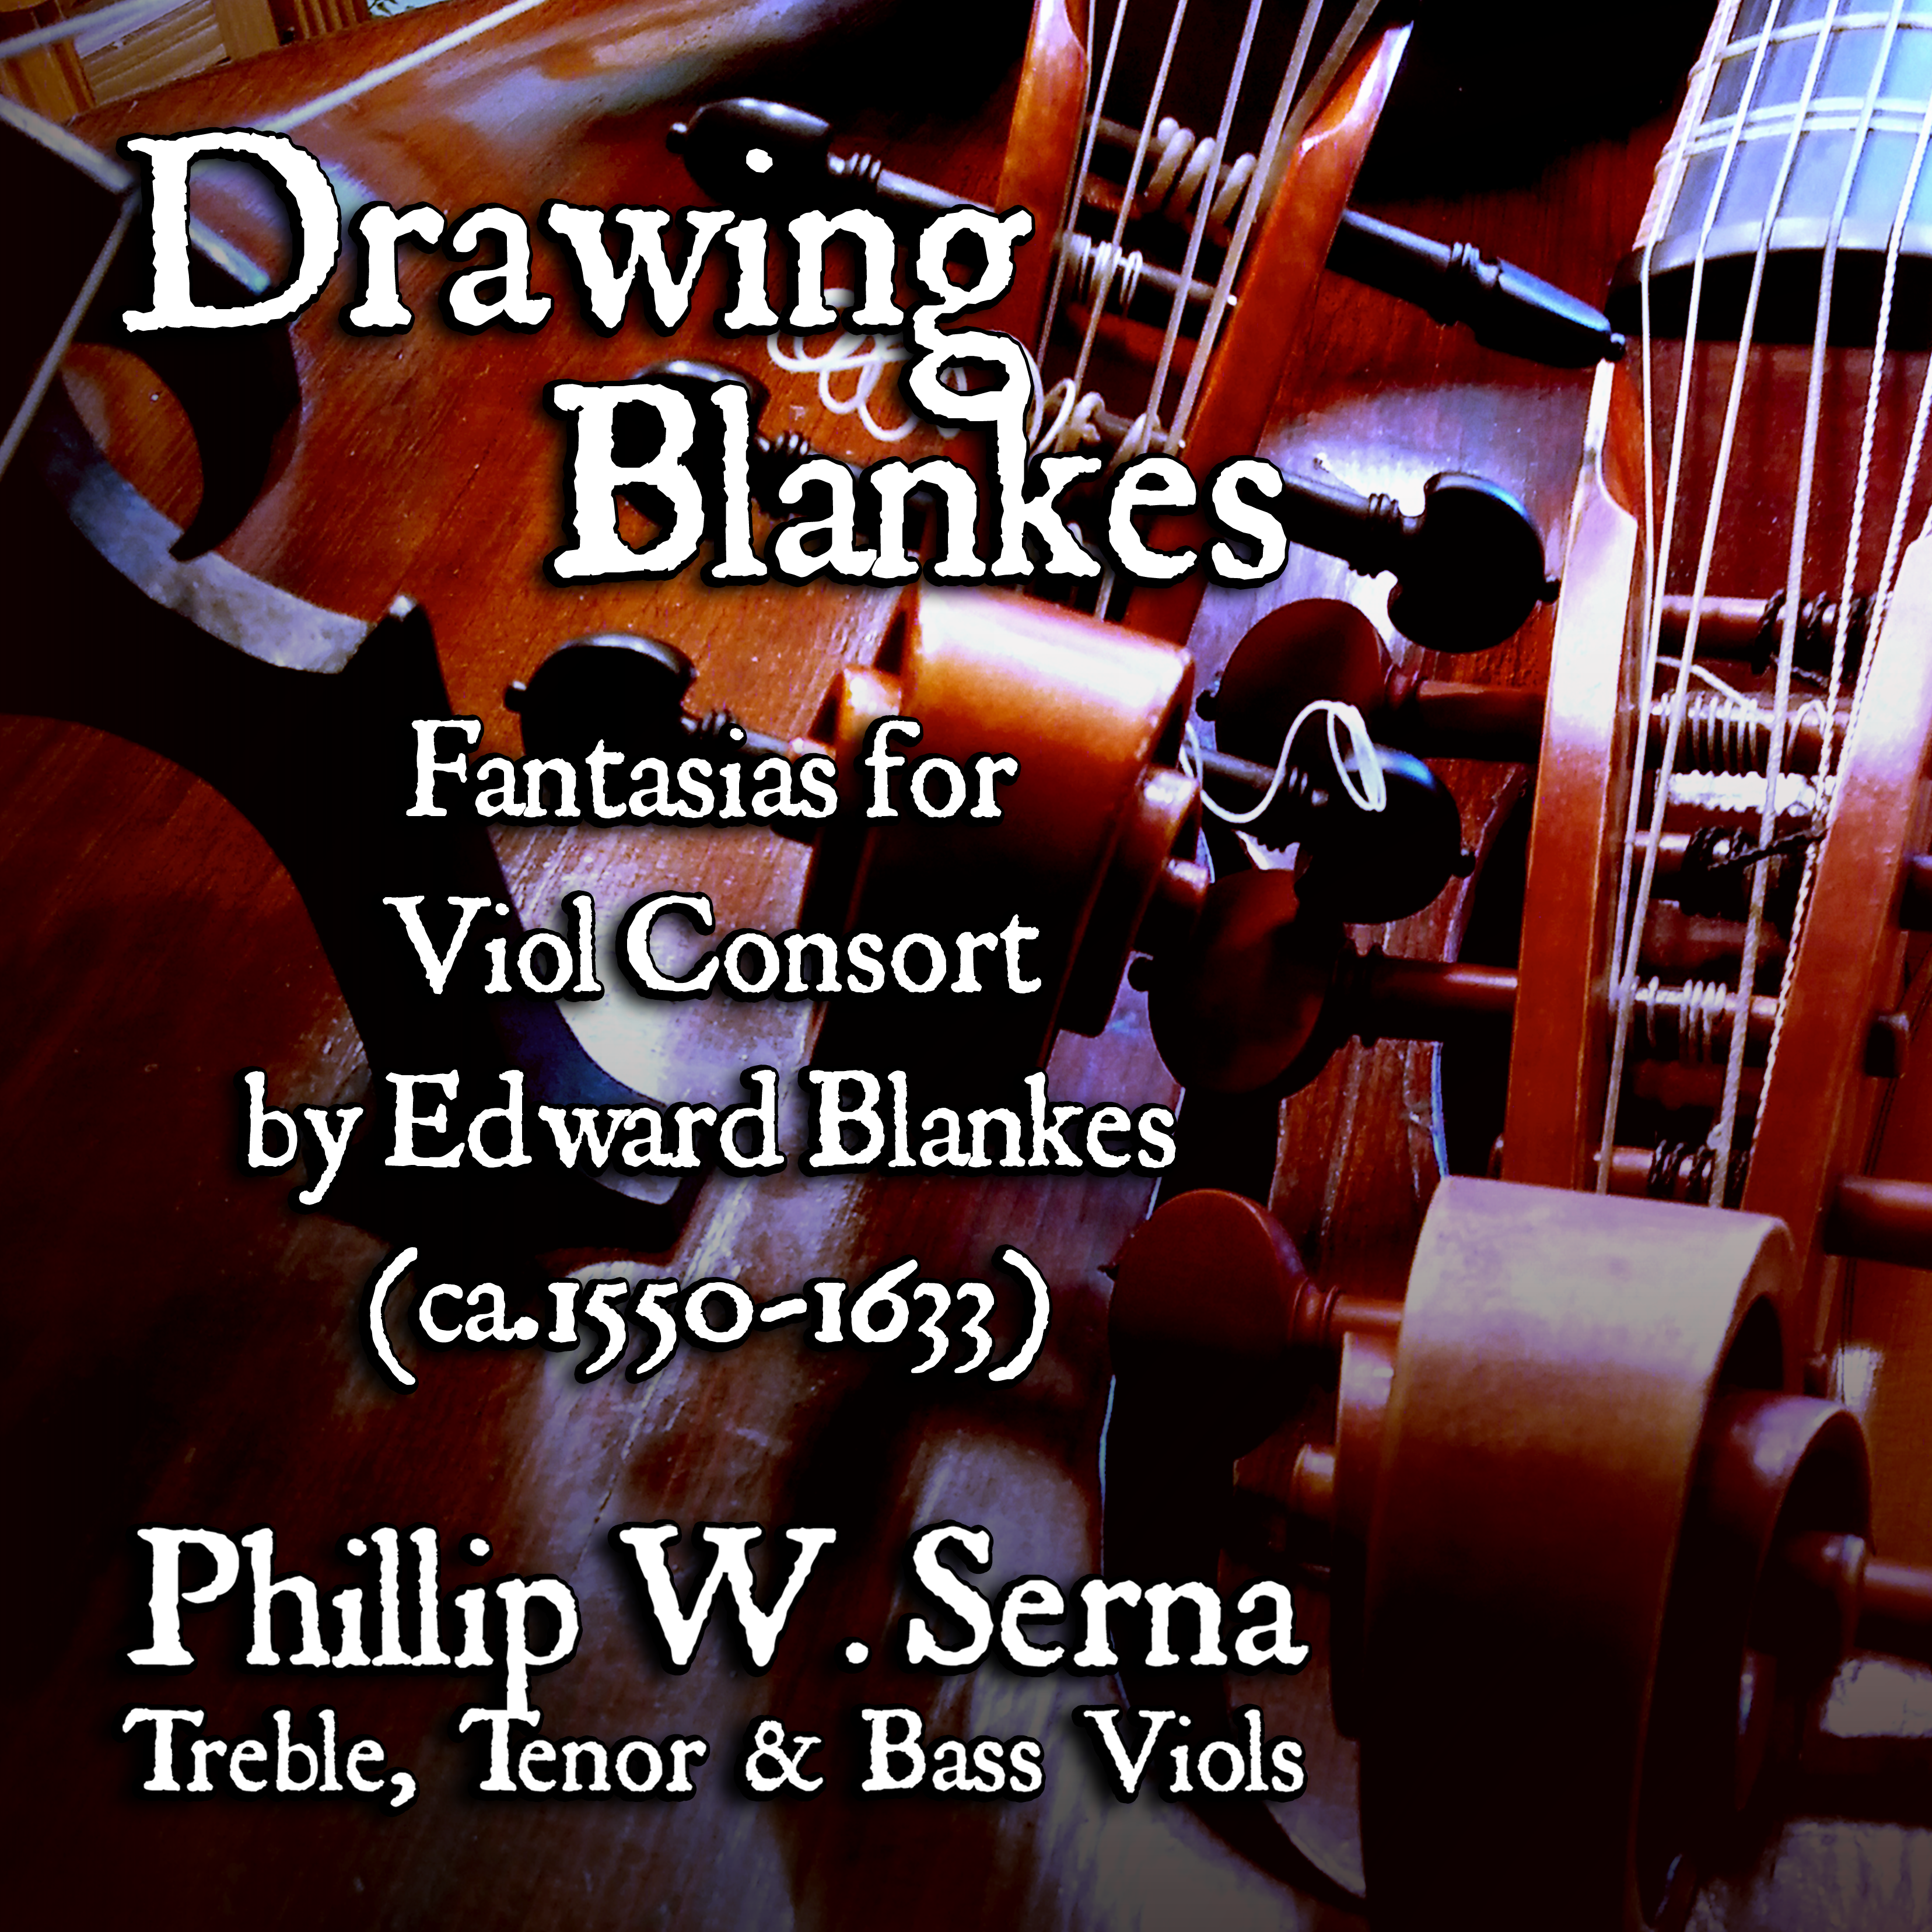 Purchase Drawing Blankes – The Fantasias for Viol Consort by Edward Blankes (ca.1550-1633)